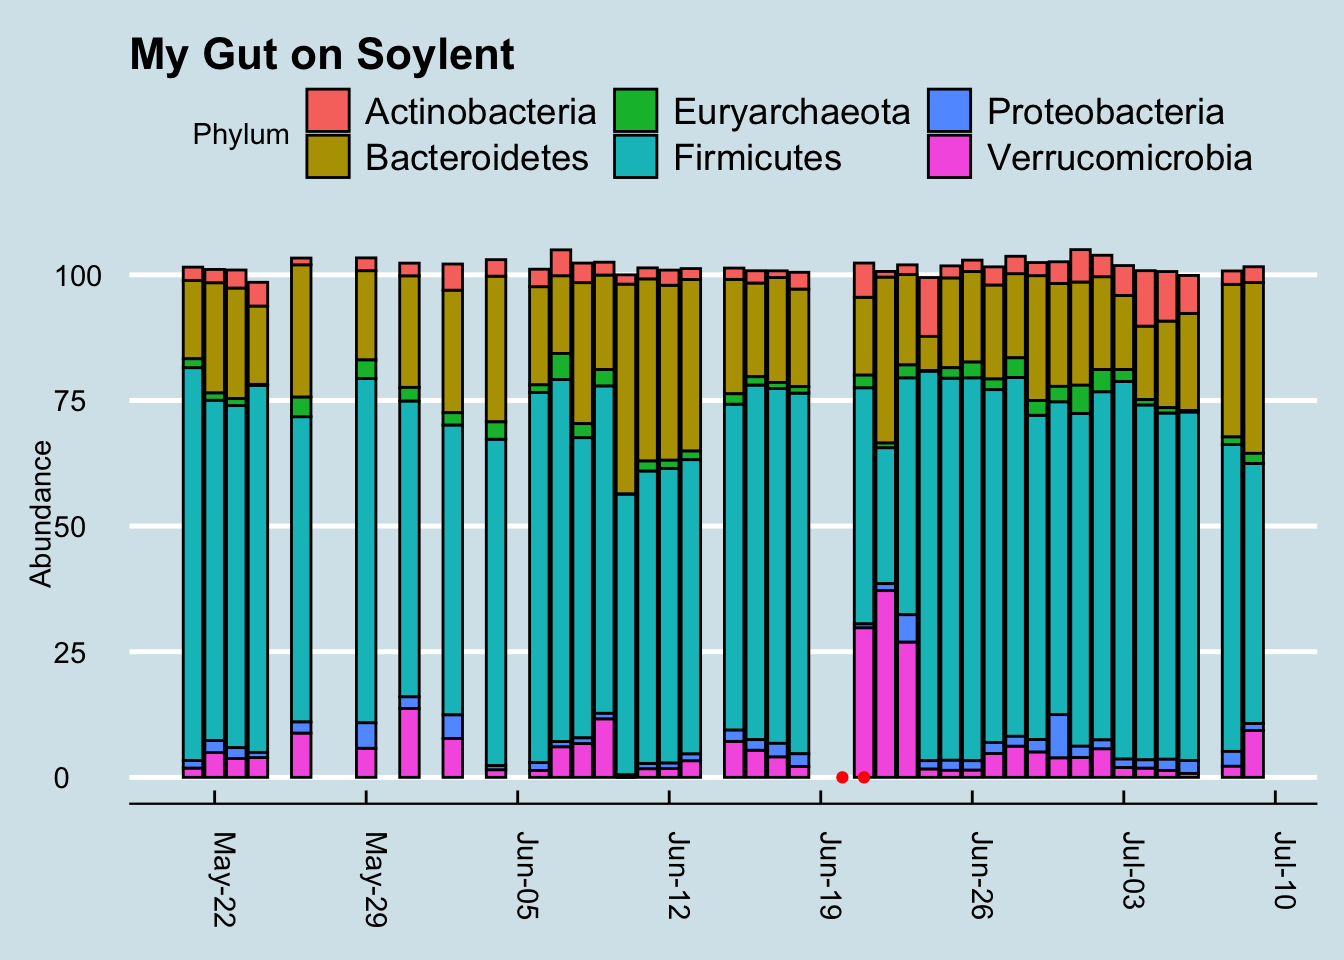 Phyla breakdown shows high Verrucomicrobia after Soylent drinking. Genus is Akkermansia.